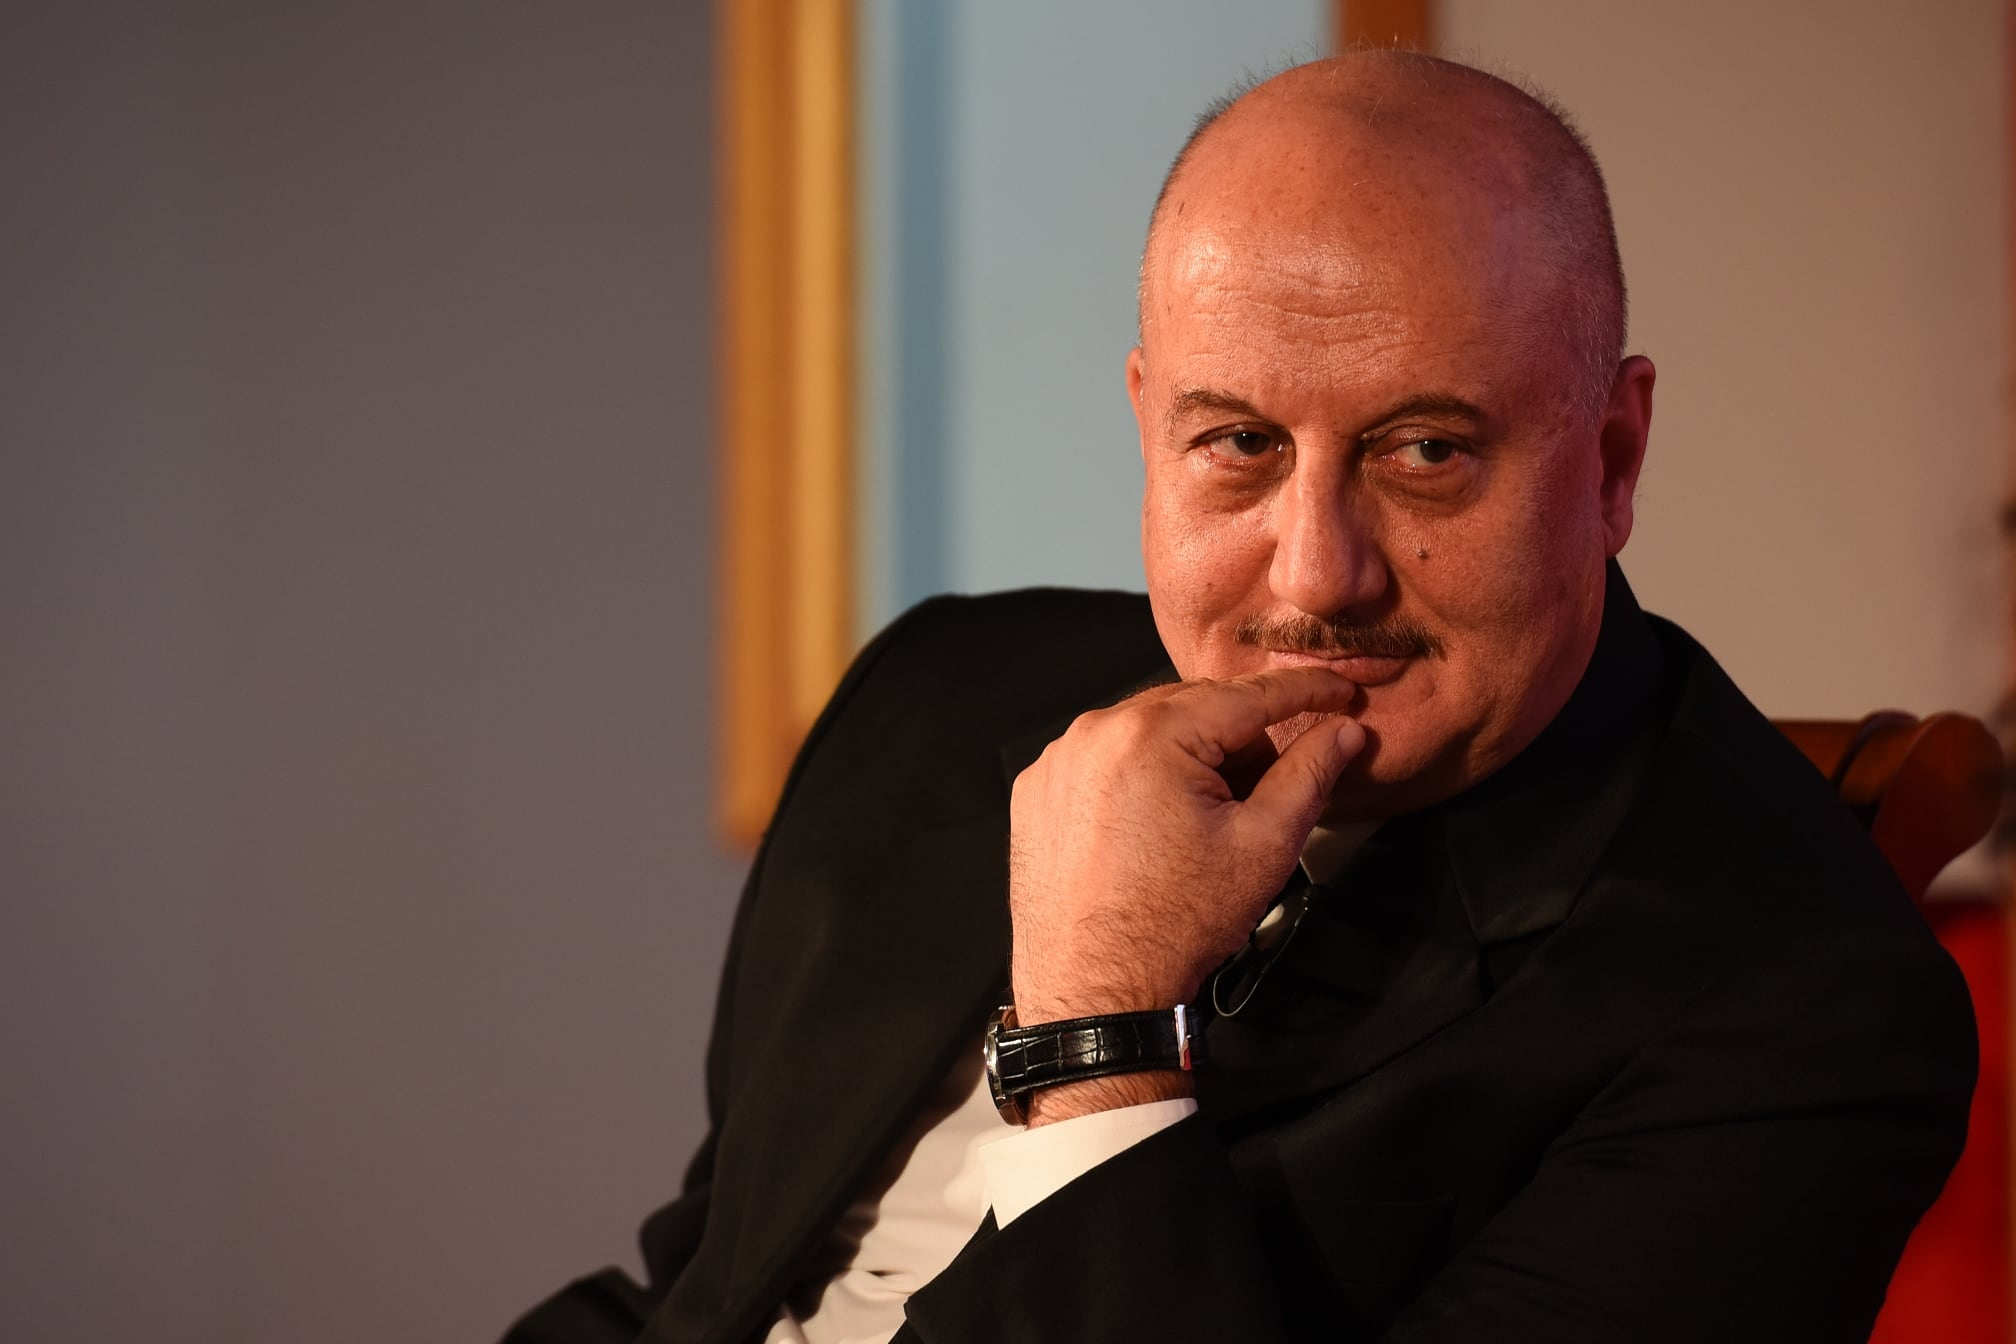 Anupam Kher To Make His Kannada Debut With Acharya Arrest?